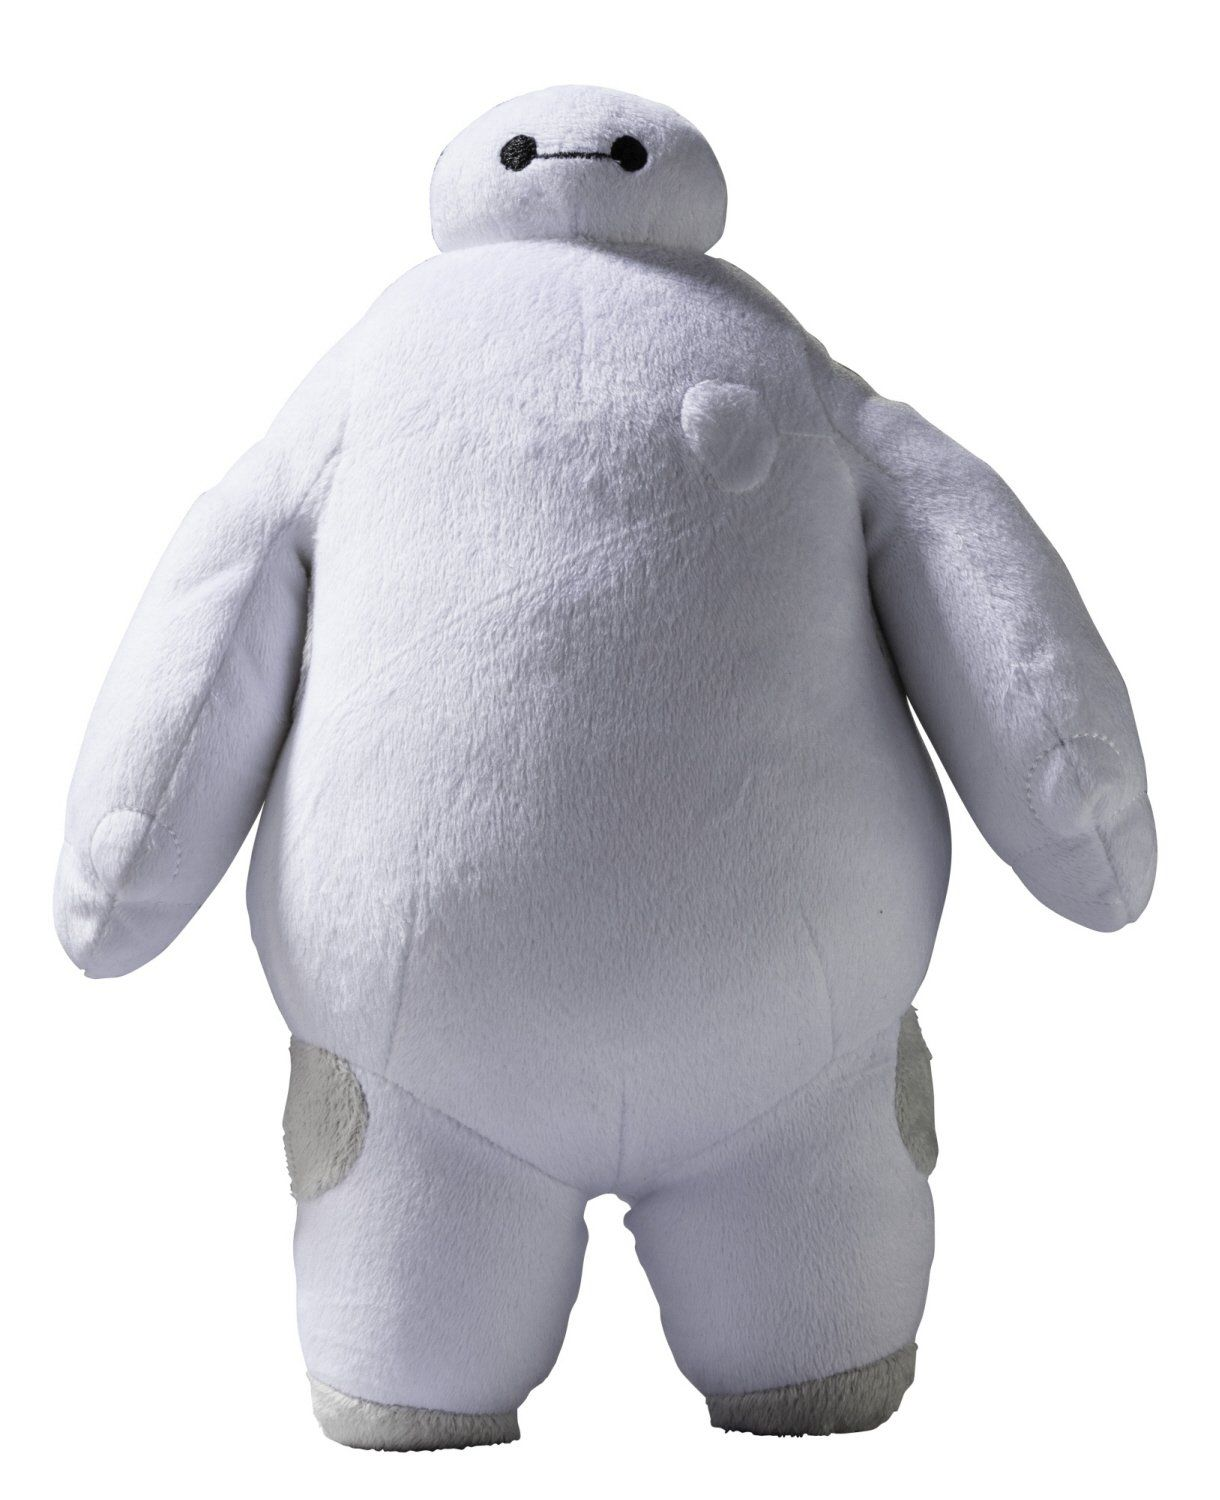 """DISNEY BIG HERO 6 BANDAI BAYMAX PLUSH TOY 10/"""" ACTION FIGURE WITH SOUND EFFECTS"""